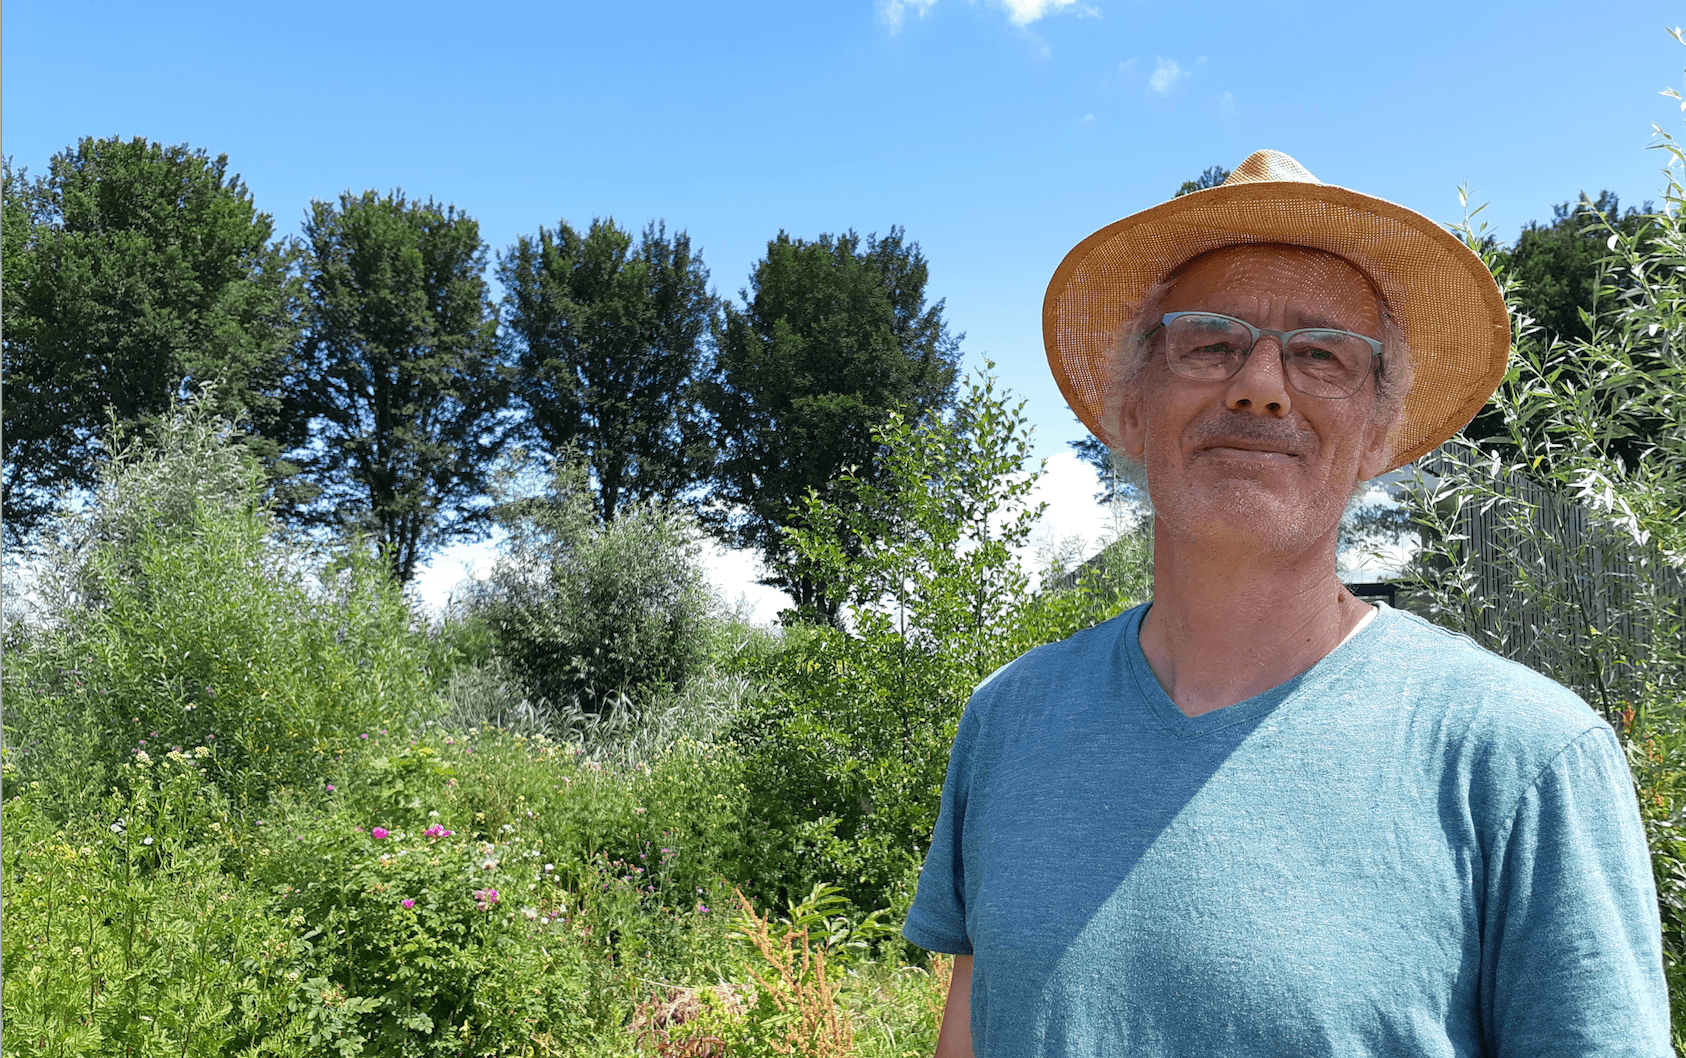 Marien Abspoe and agroforestry: a model that fosters the regeneration of biodiversity